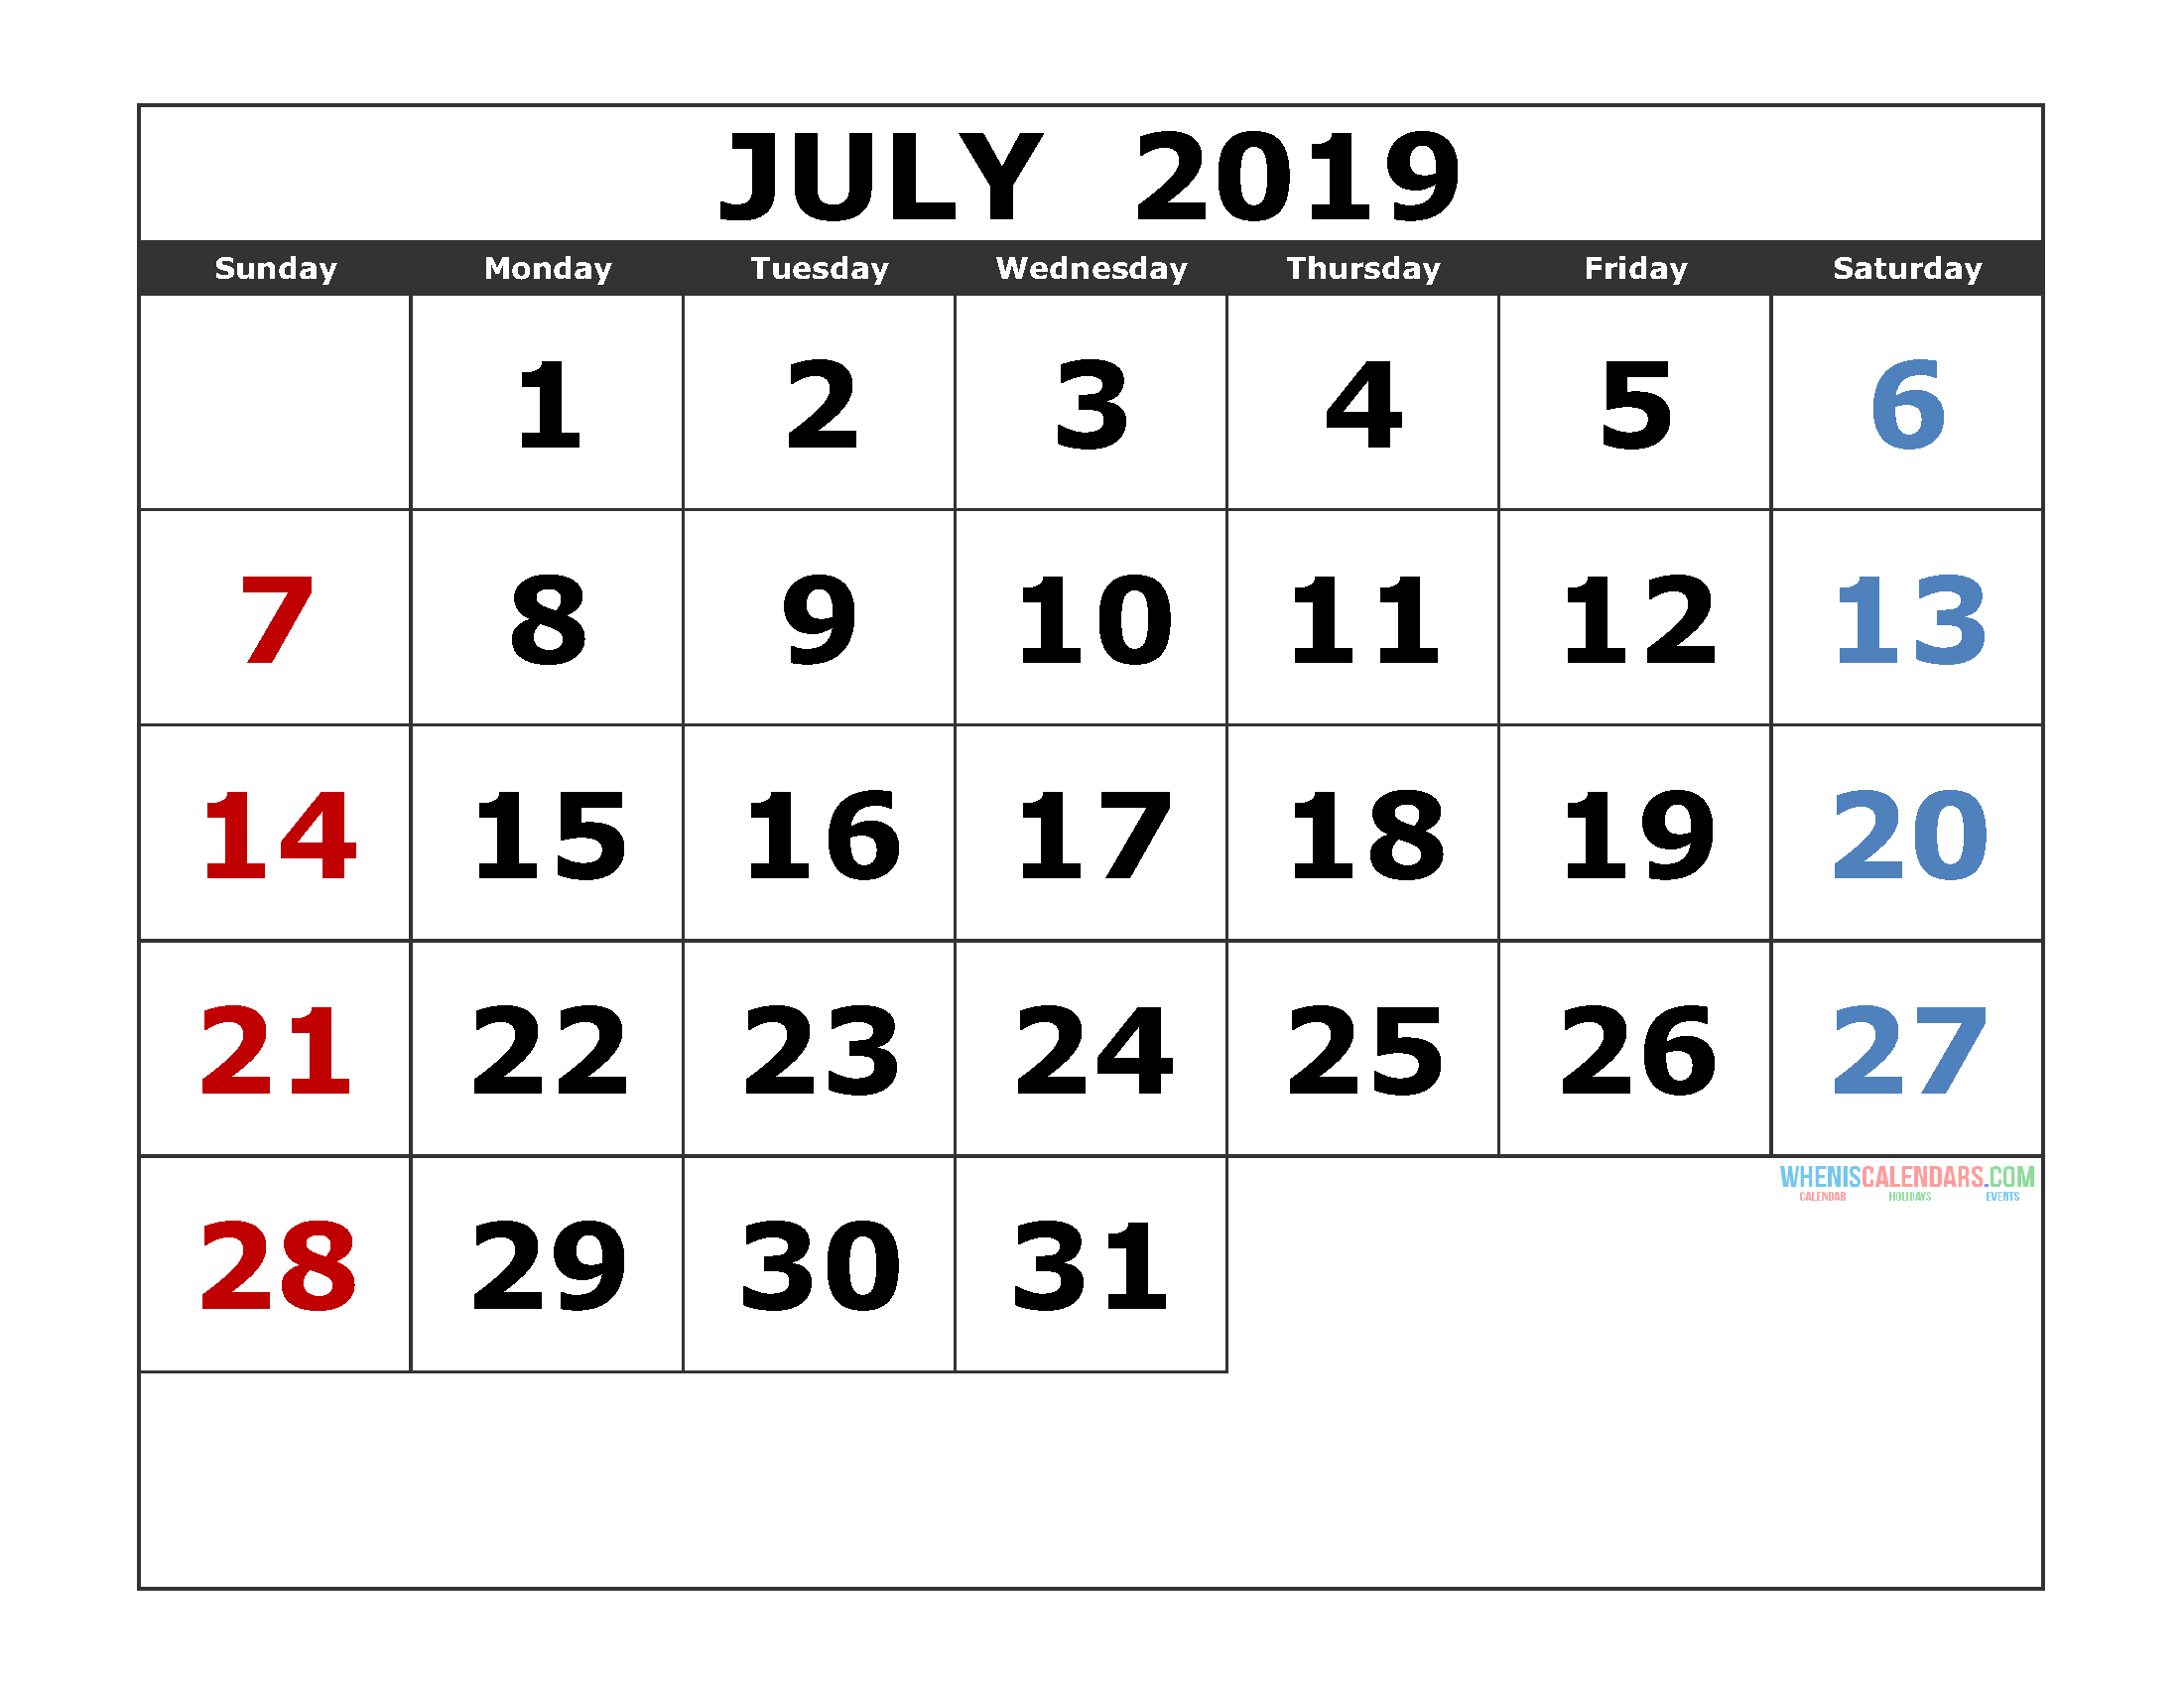 July 2019 Printable Calendar Template Excel, PDF, Image